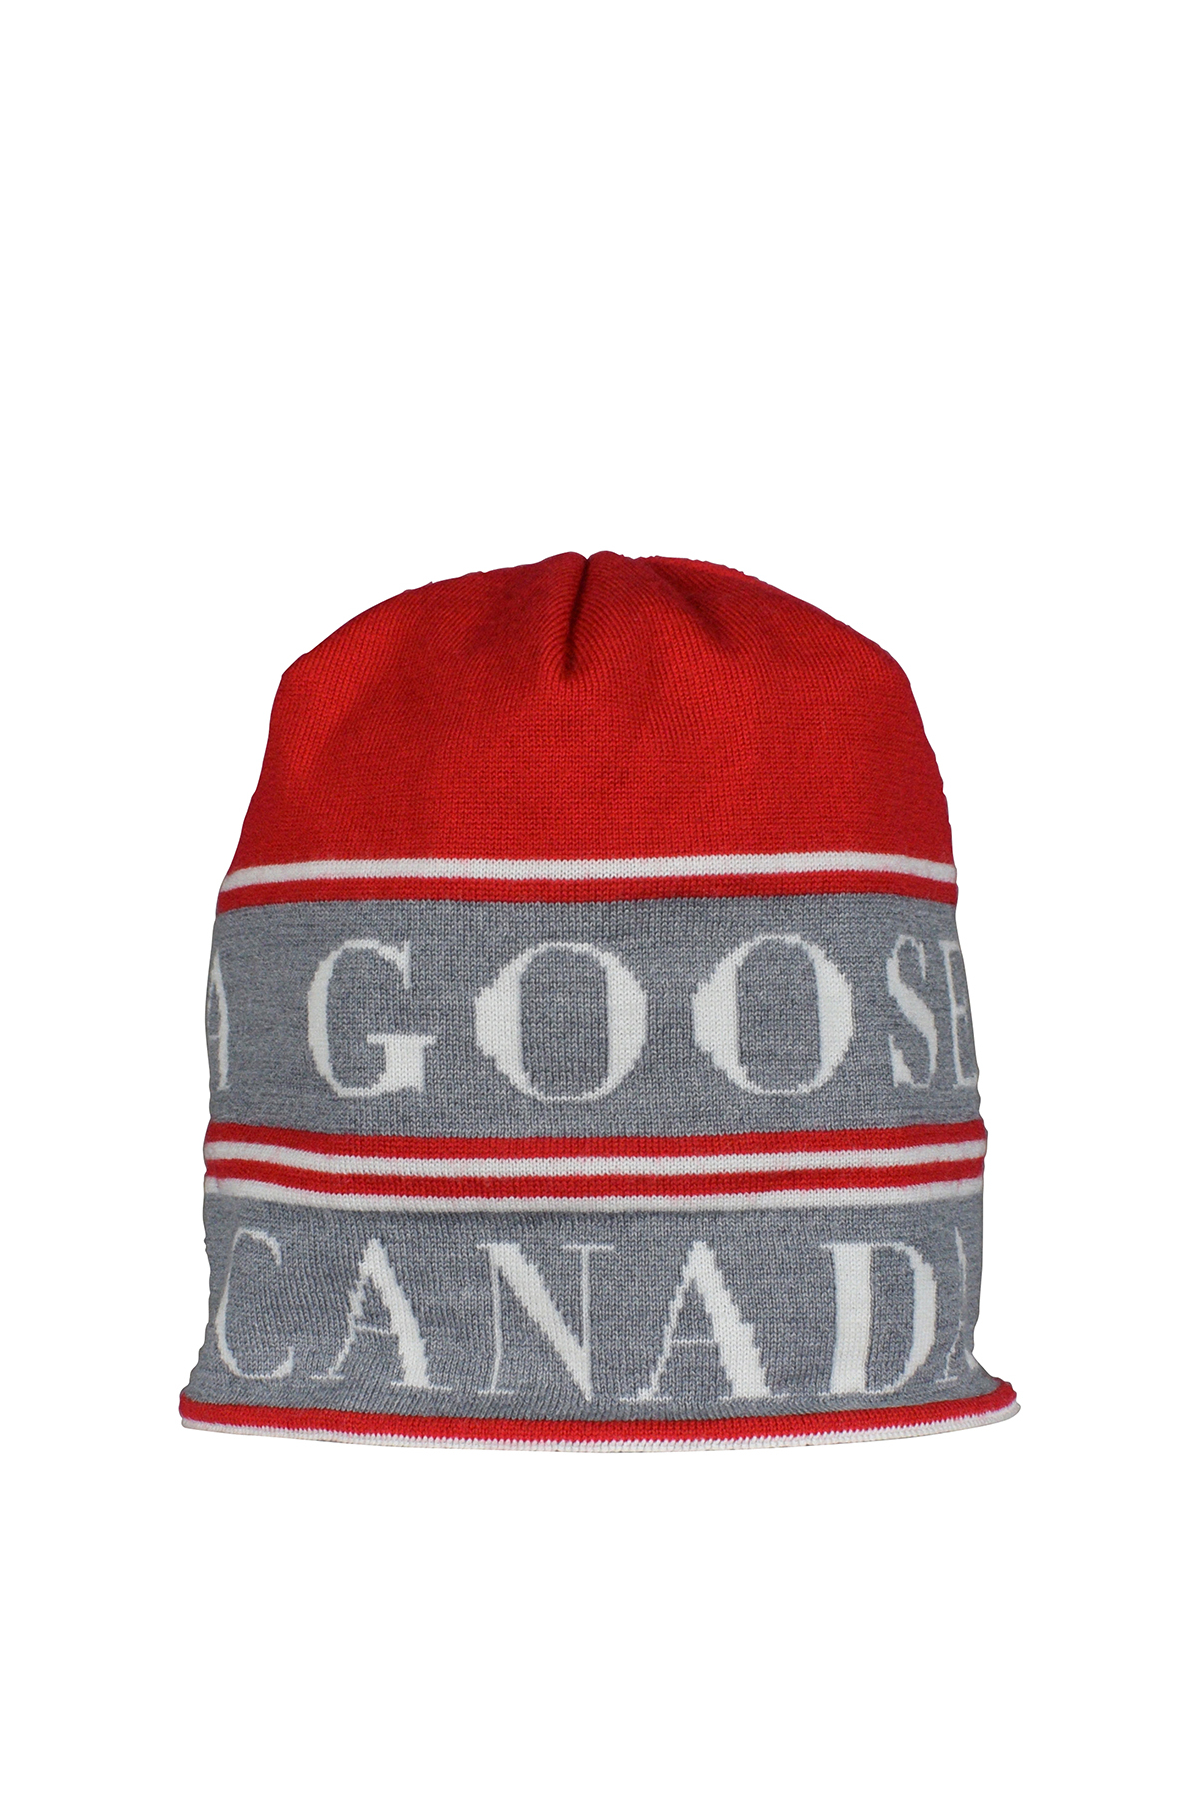 Reversible red and black Canada Goose beanie.